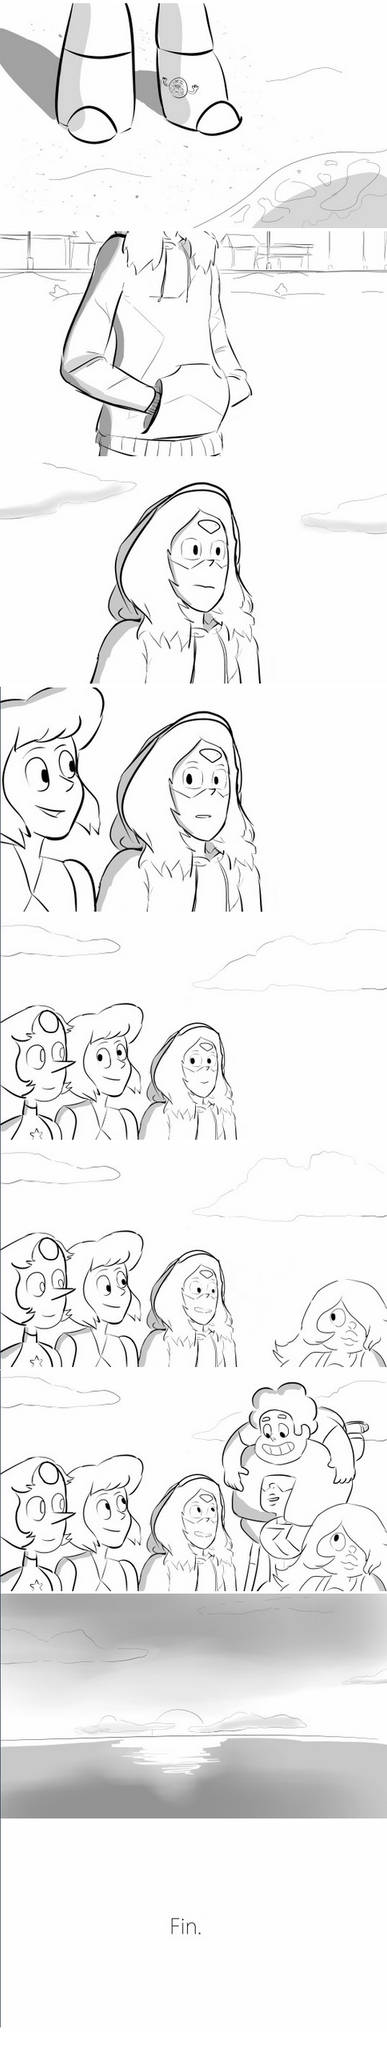 Steven Universe Comic Peridot's Redemption Part 17 by ArbitraryLabby